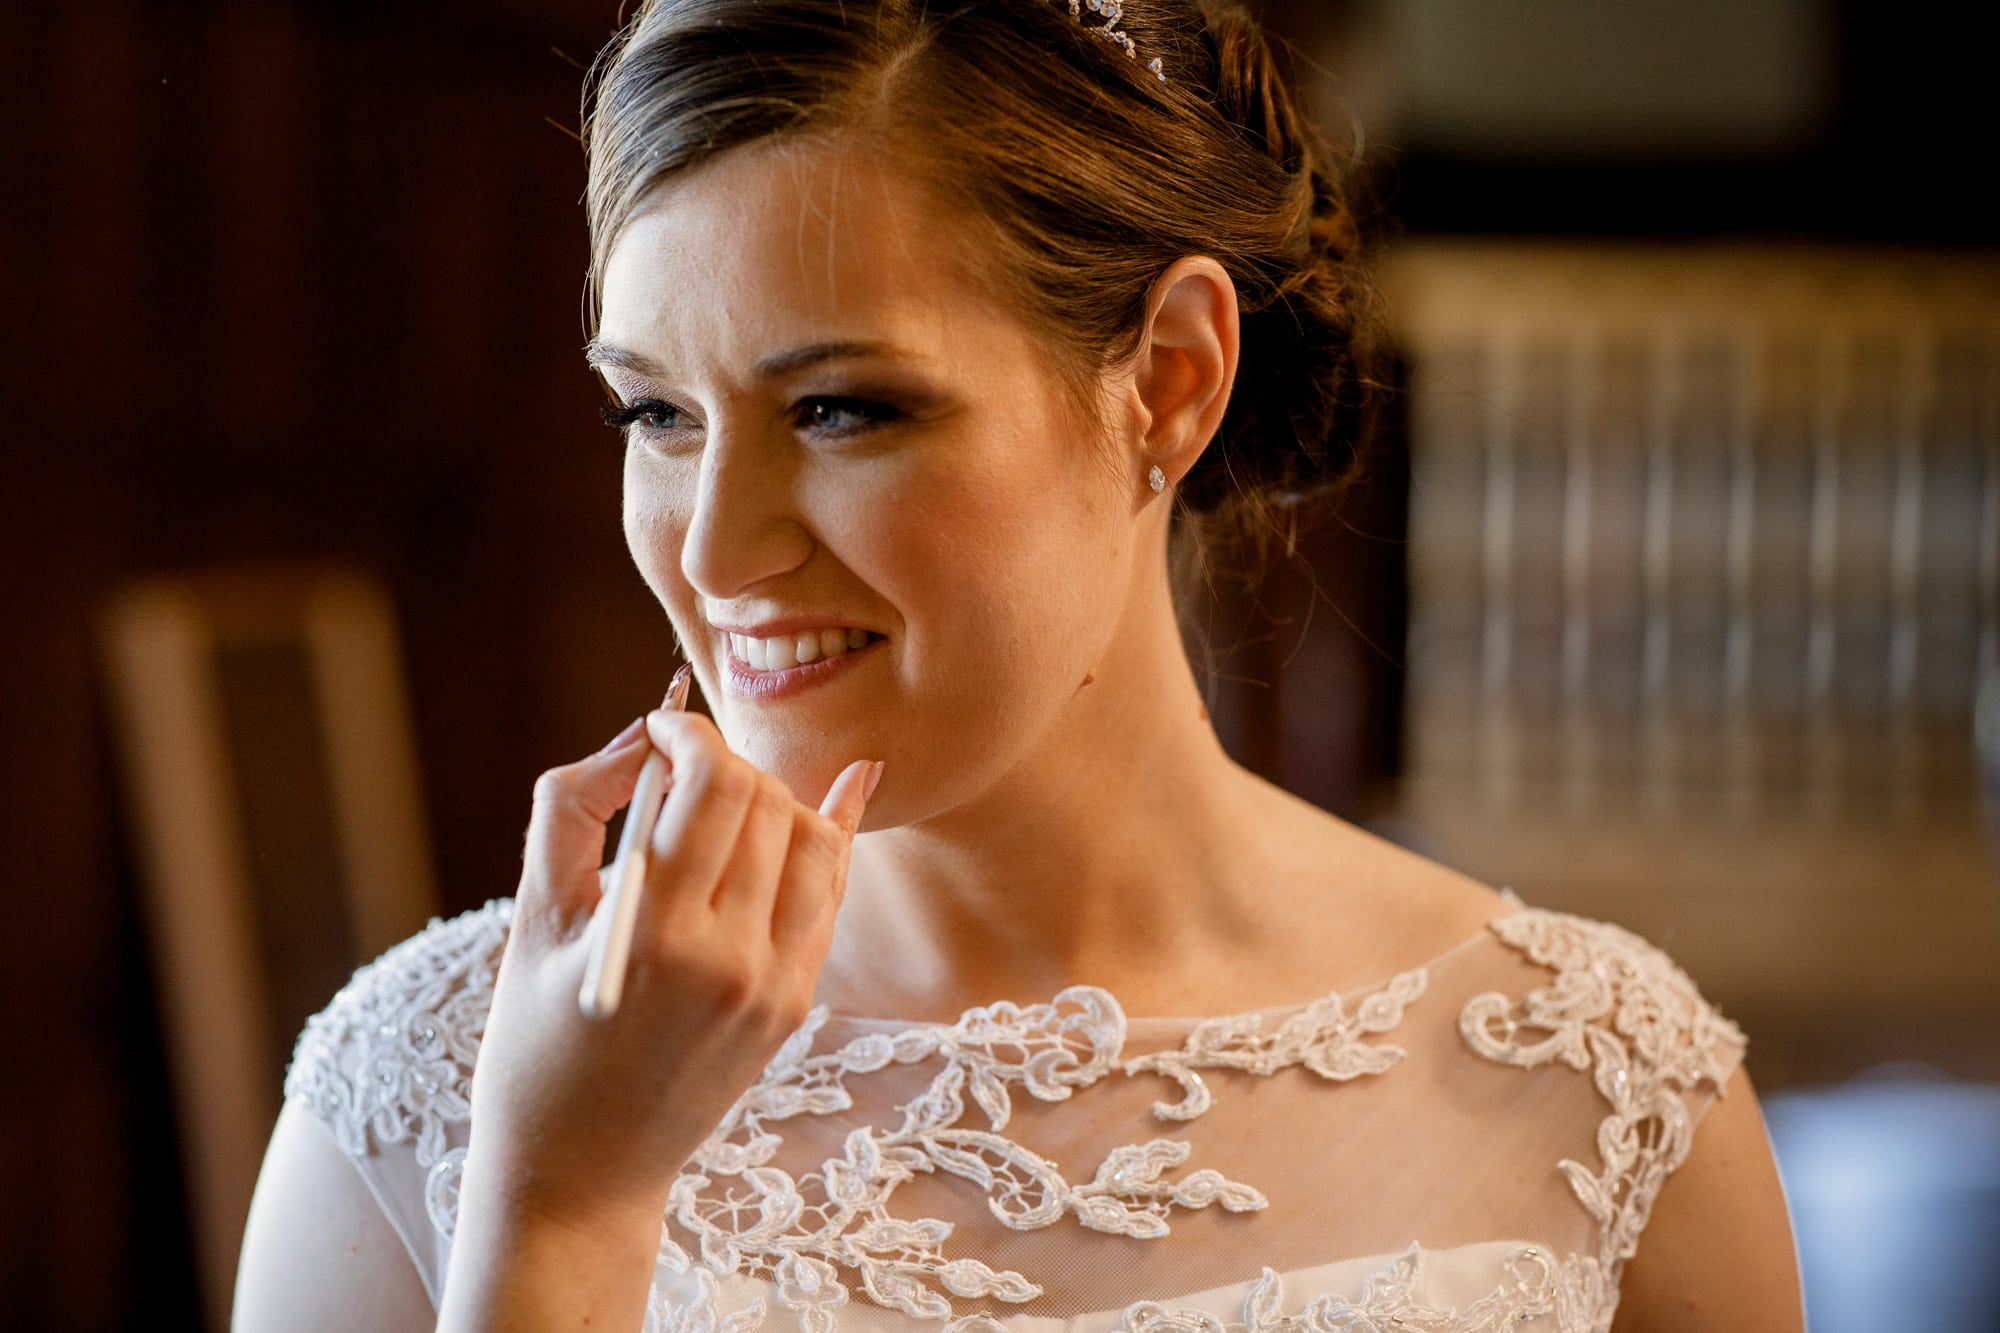 lipstick touch up for bride